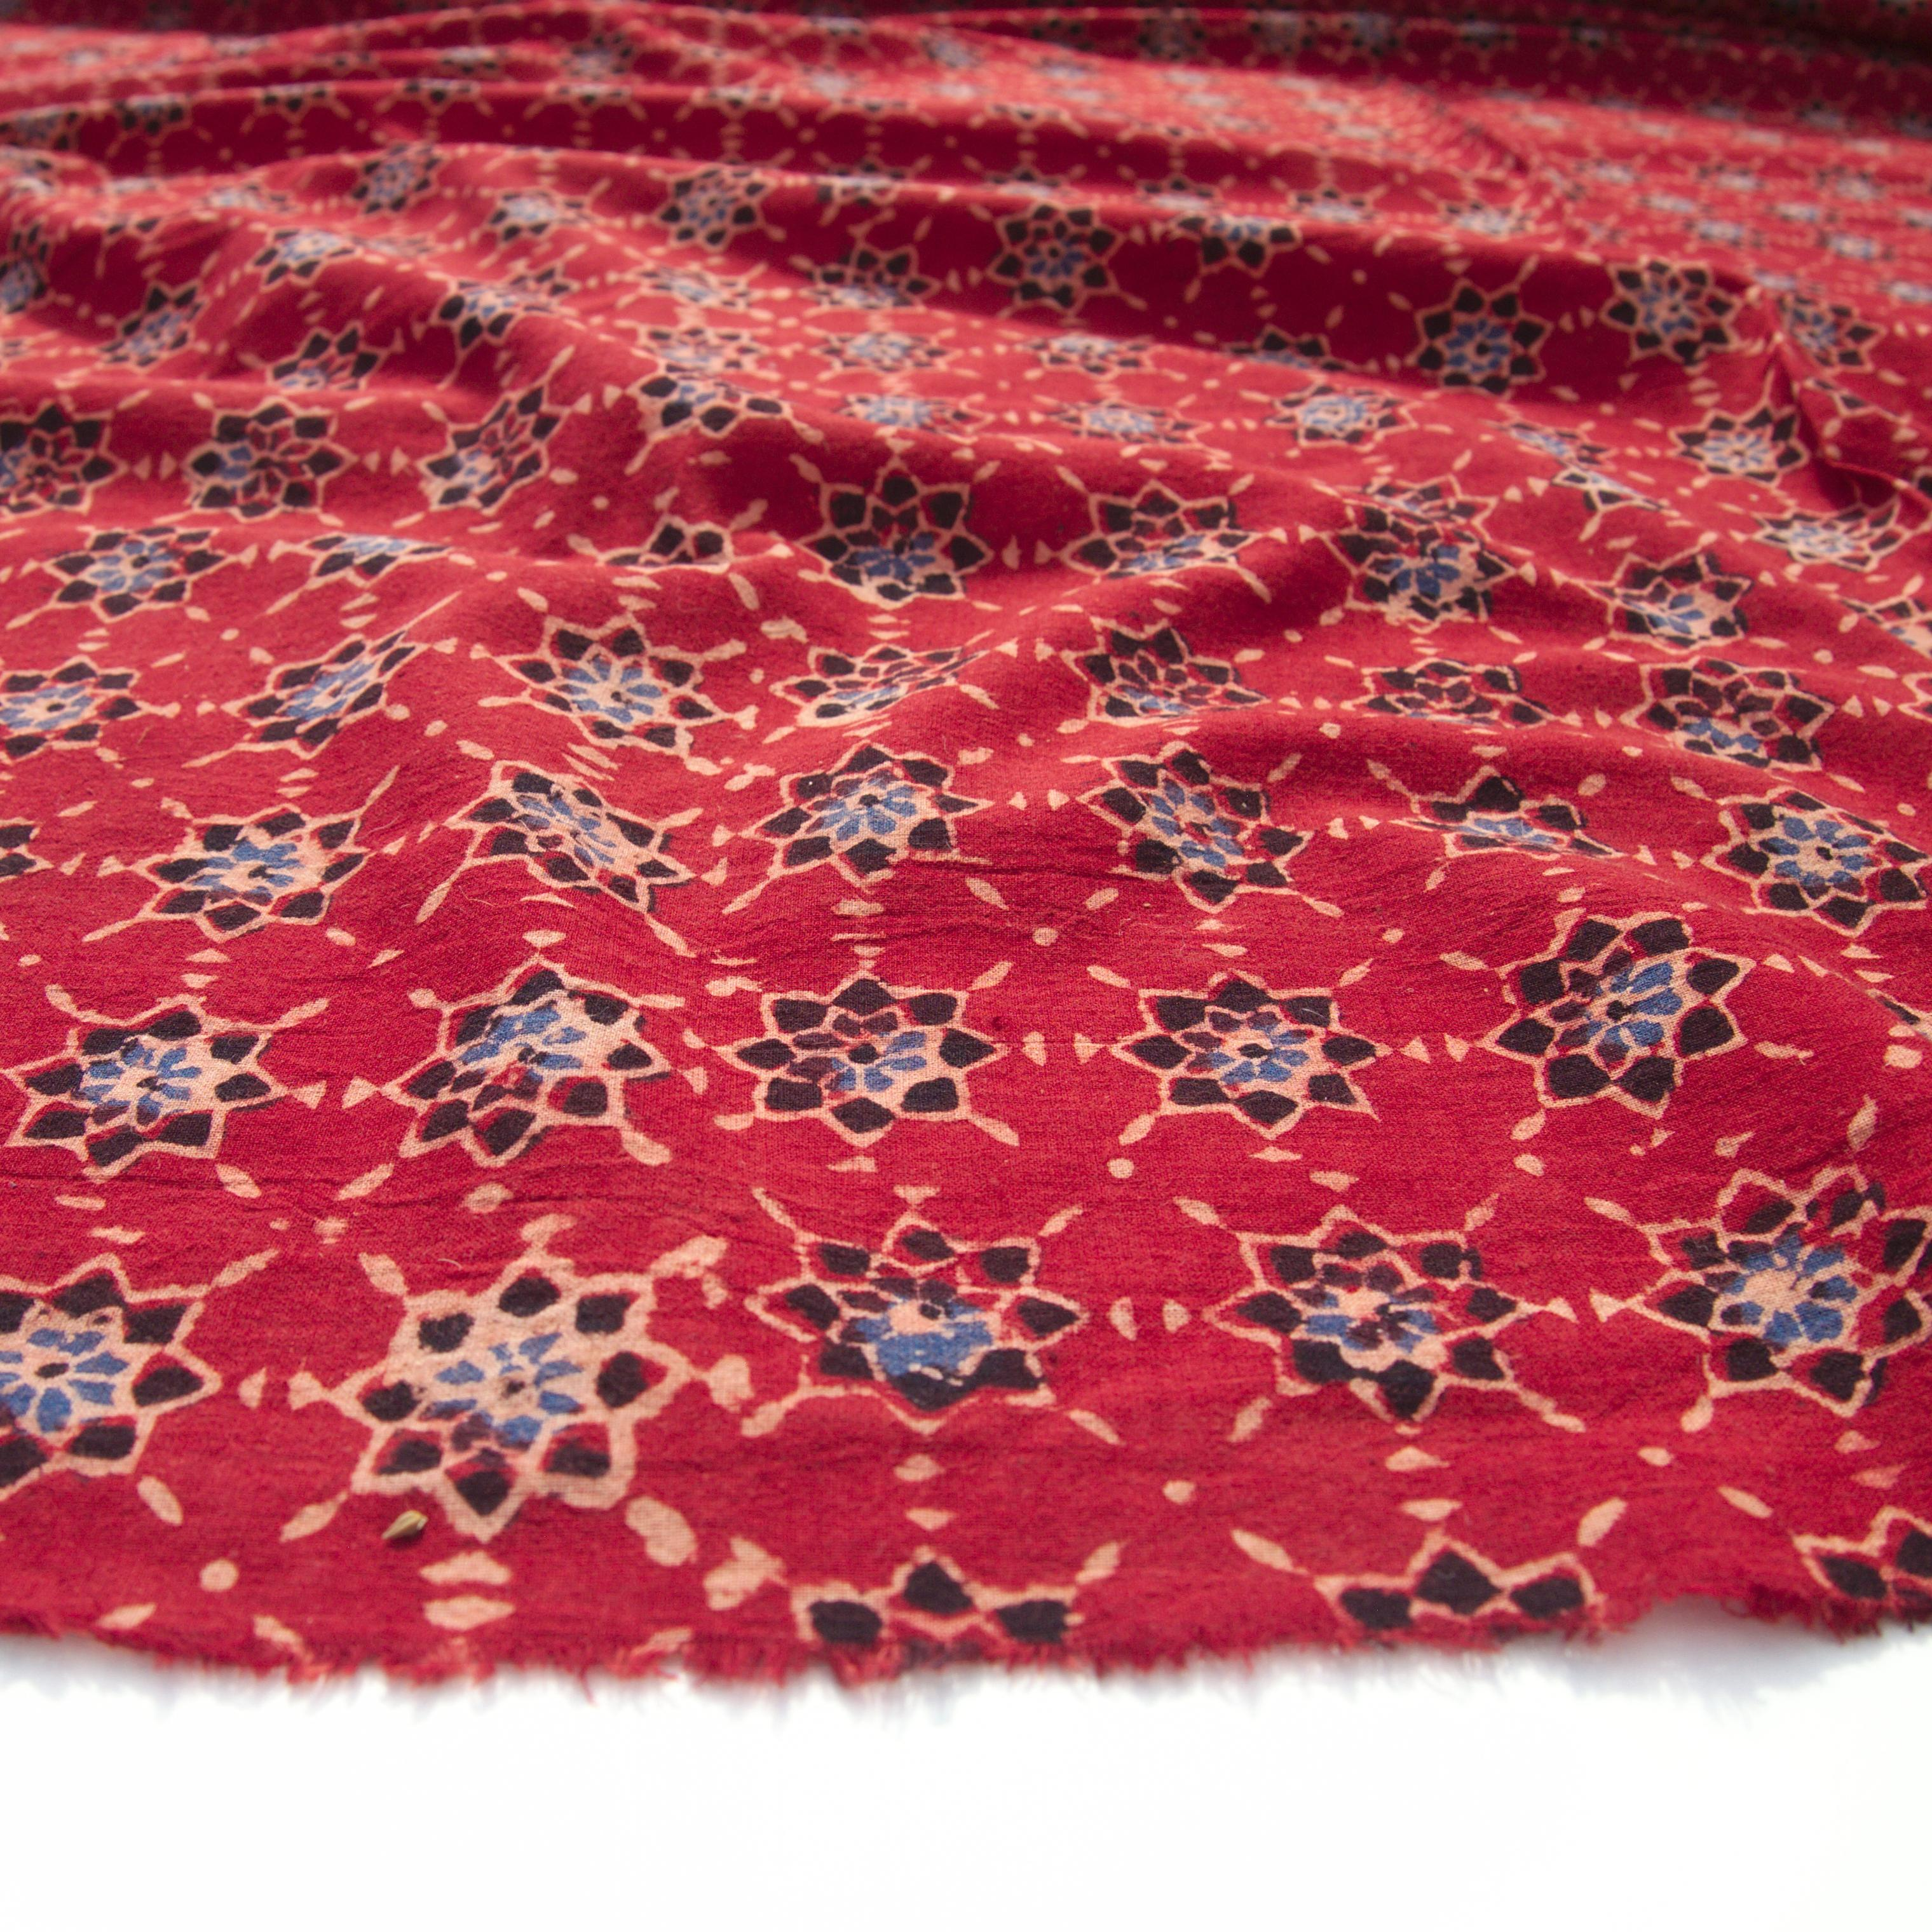 Block Printed Fabric, 100% Cotton, Ajrak Design: Red Base, Blue, Black Starburst. Angle